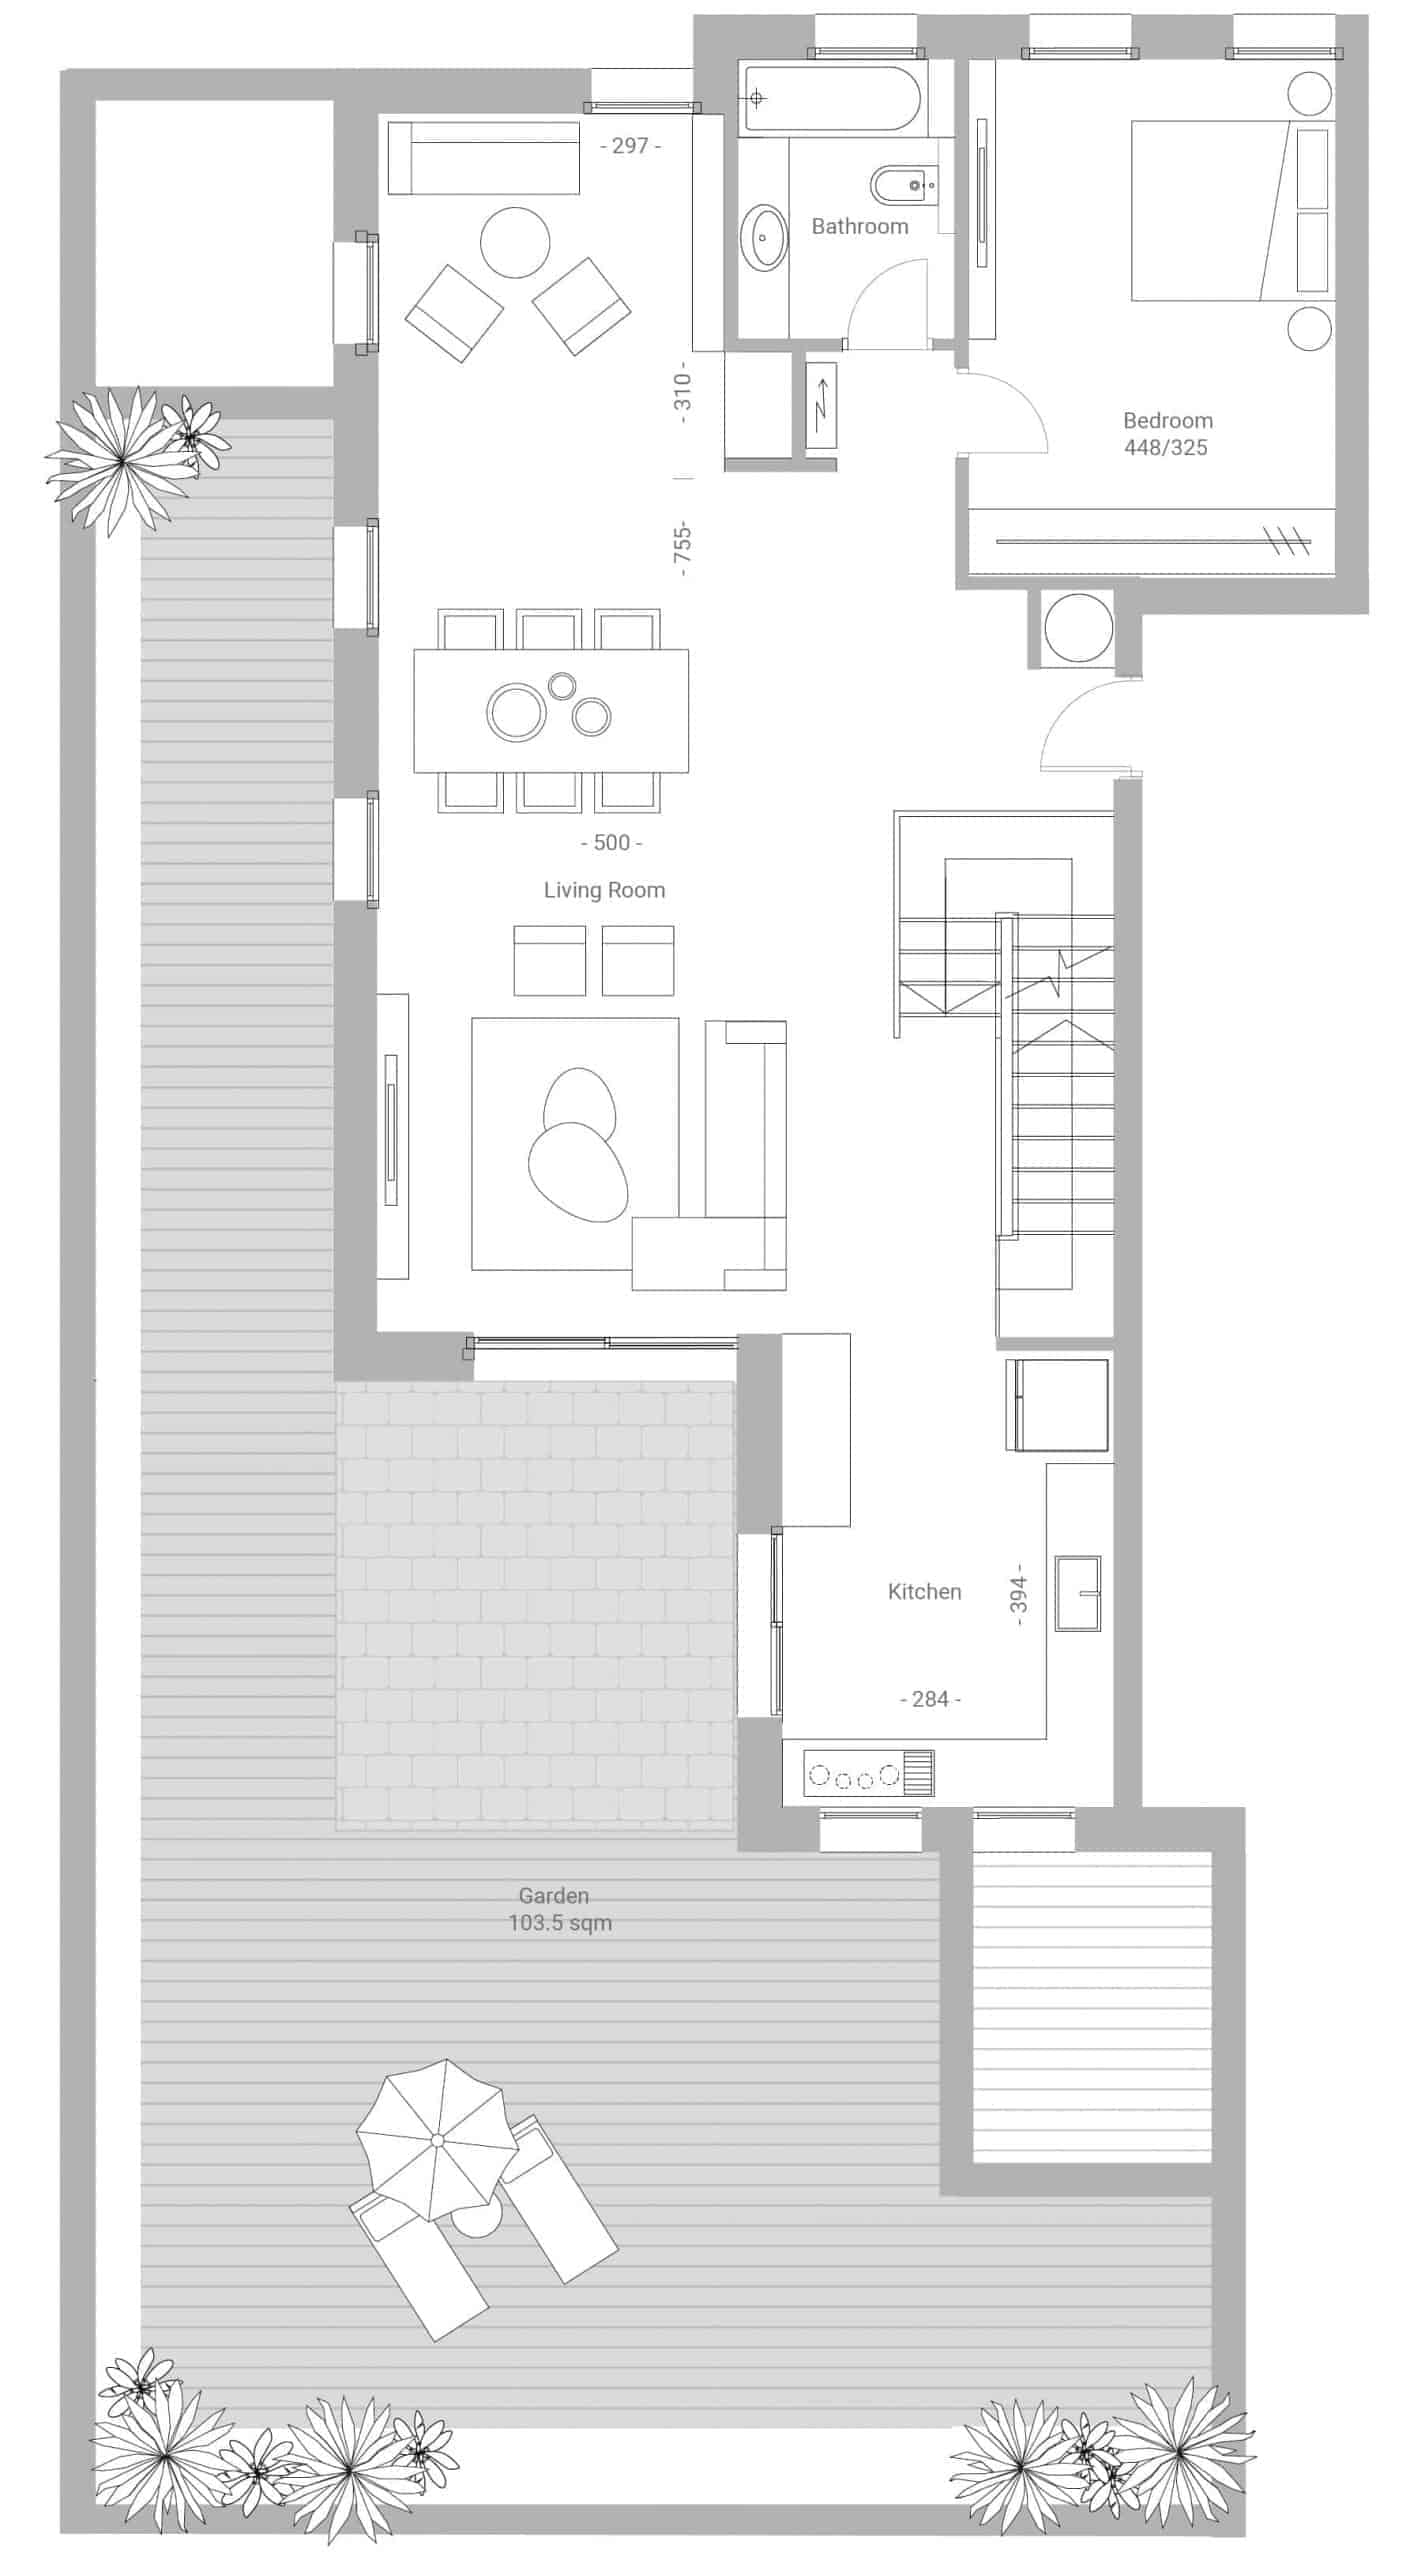 3046-triplex-E1-mainLevel-2-scaled.jpg